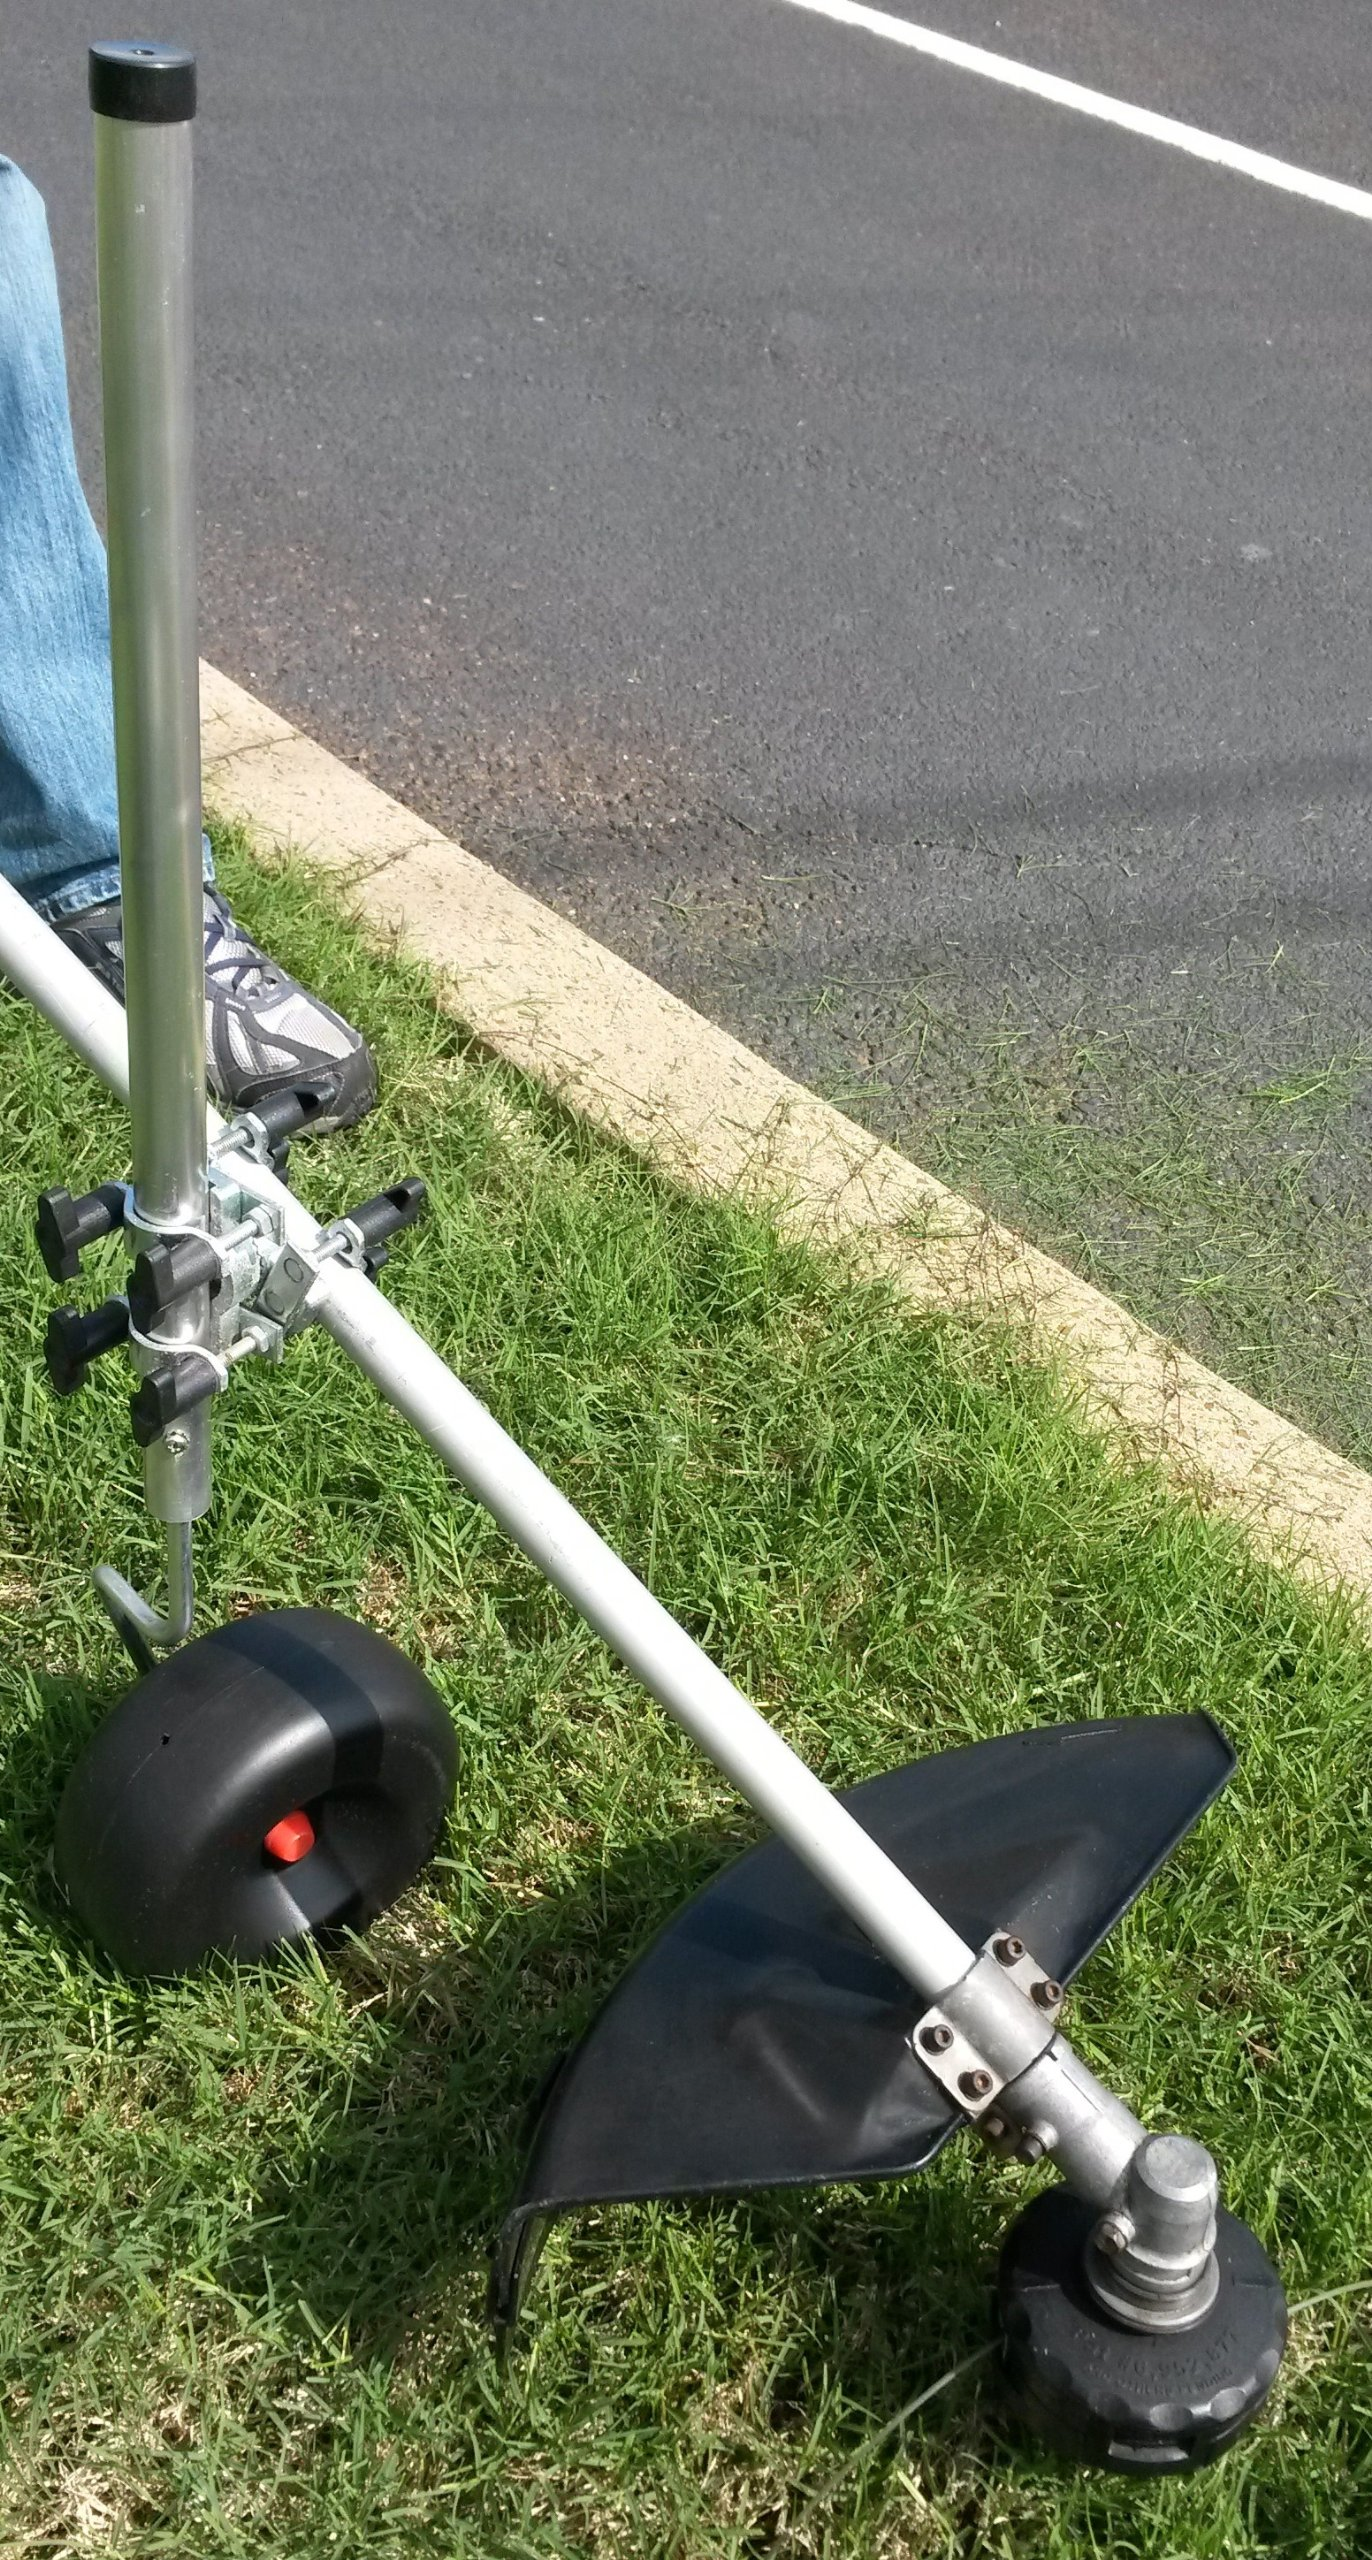 Trimmer Caddy: Support Attachment for Weed, Grass, Lawn, & String Trimmers by Trimmer Caddy